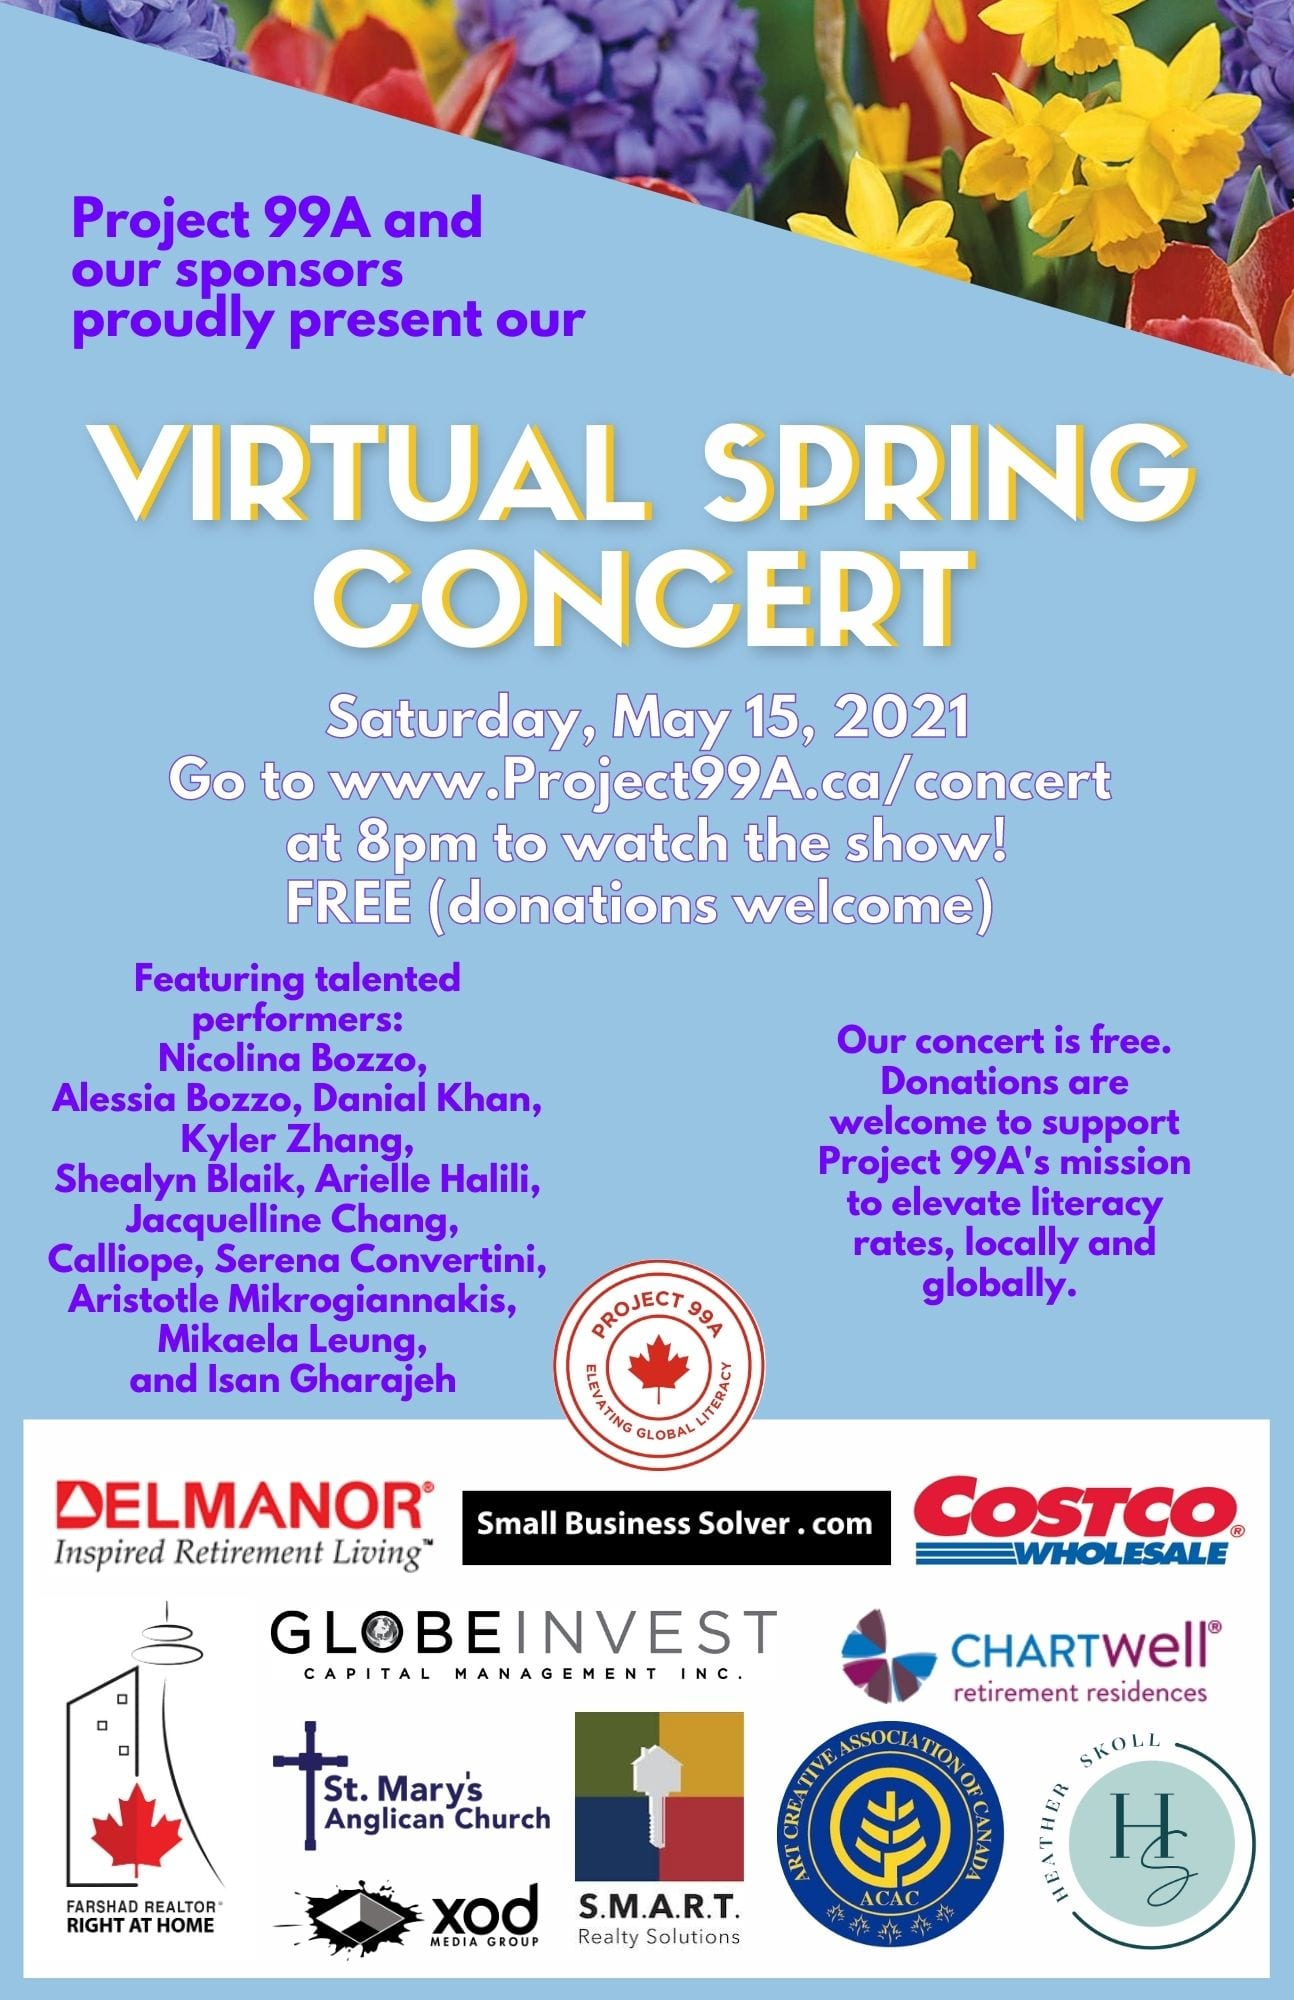 Project 99A's Virtual Spring Concert